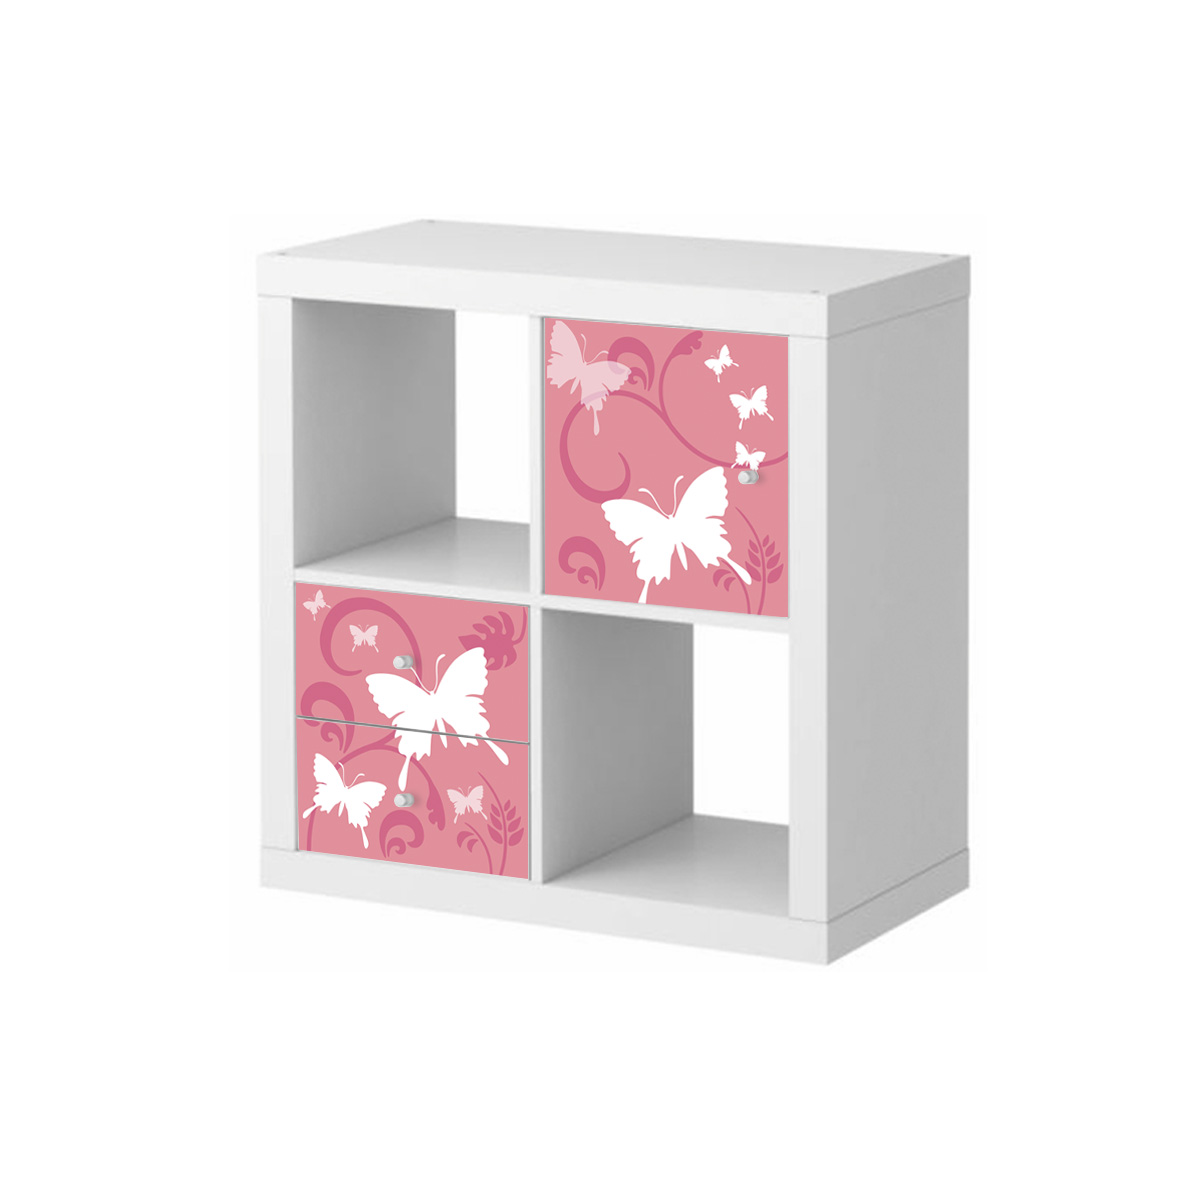 Stickers meubles ikea stickers meubles ikea papillon prairie 2 ambiance - Stickers ikea meuble ...